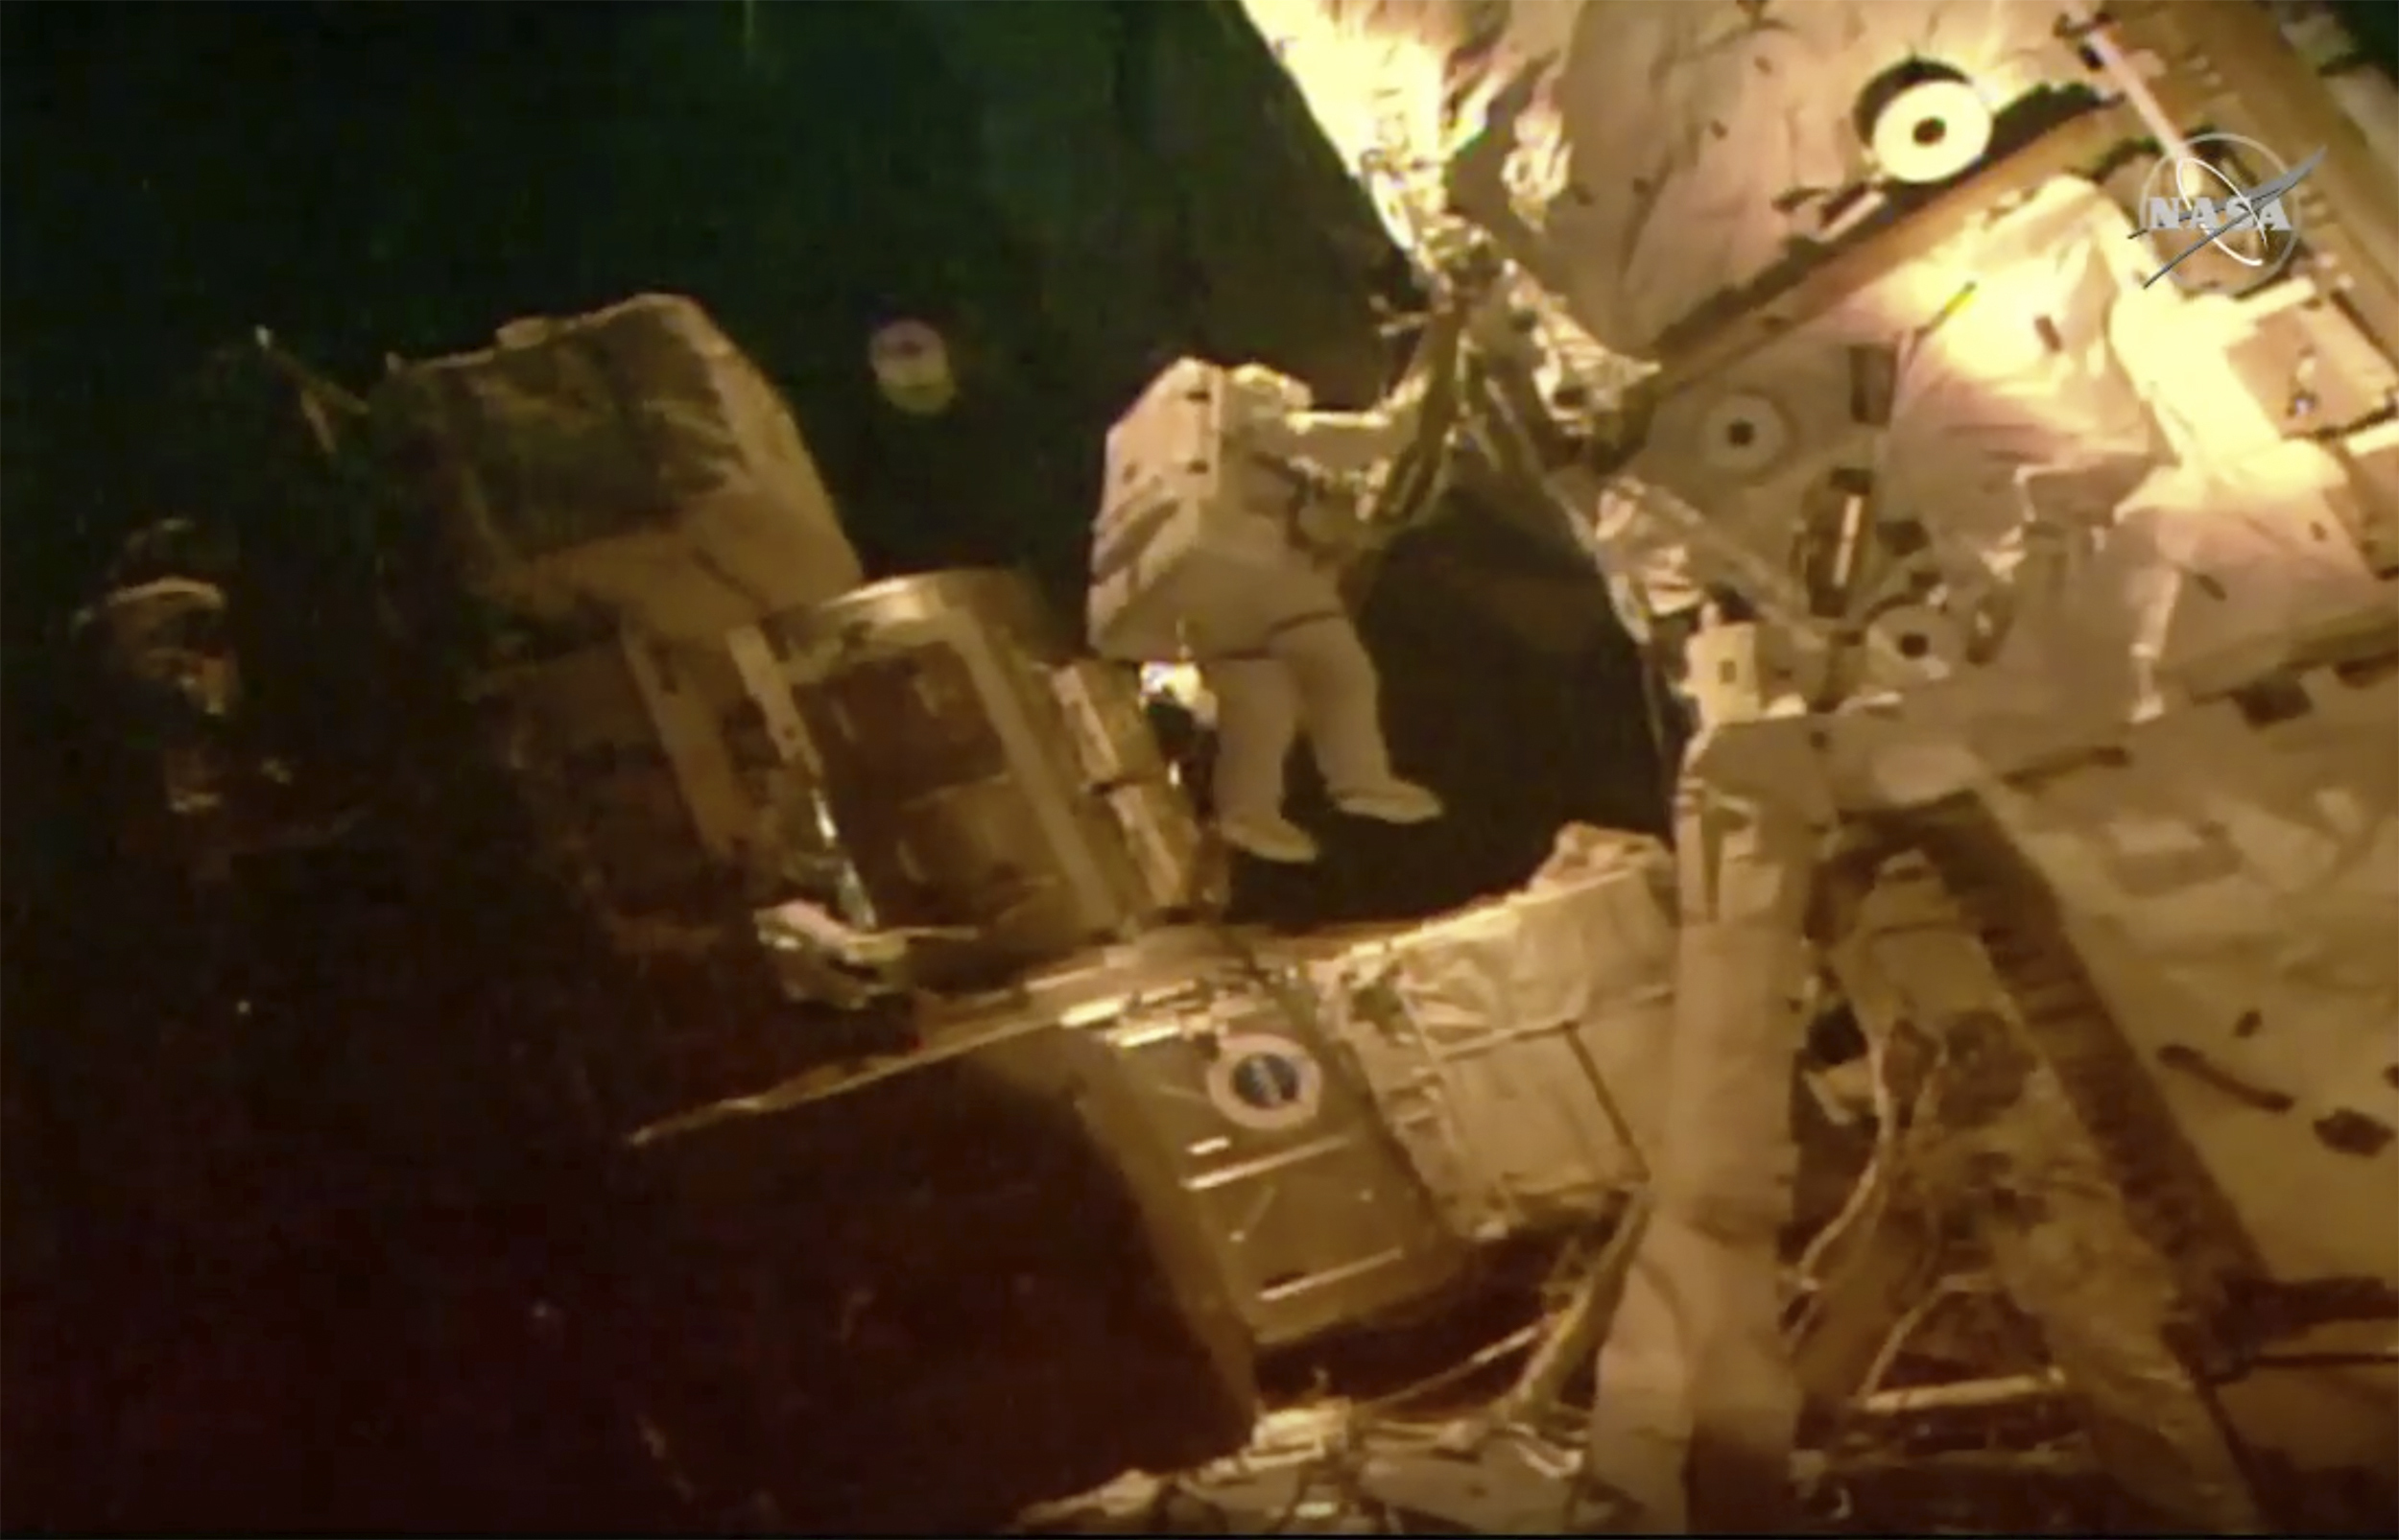 This photo provided by NASA shows astronauts Bob Behnken and Chris Cassidy on a spacewalk outside of the International Space Station on July 21, 2020.